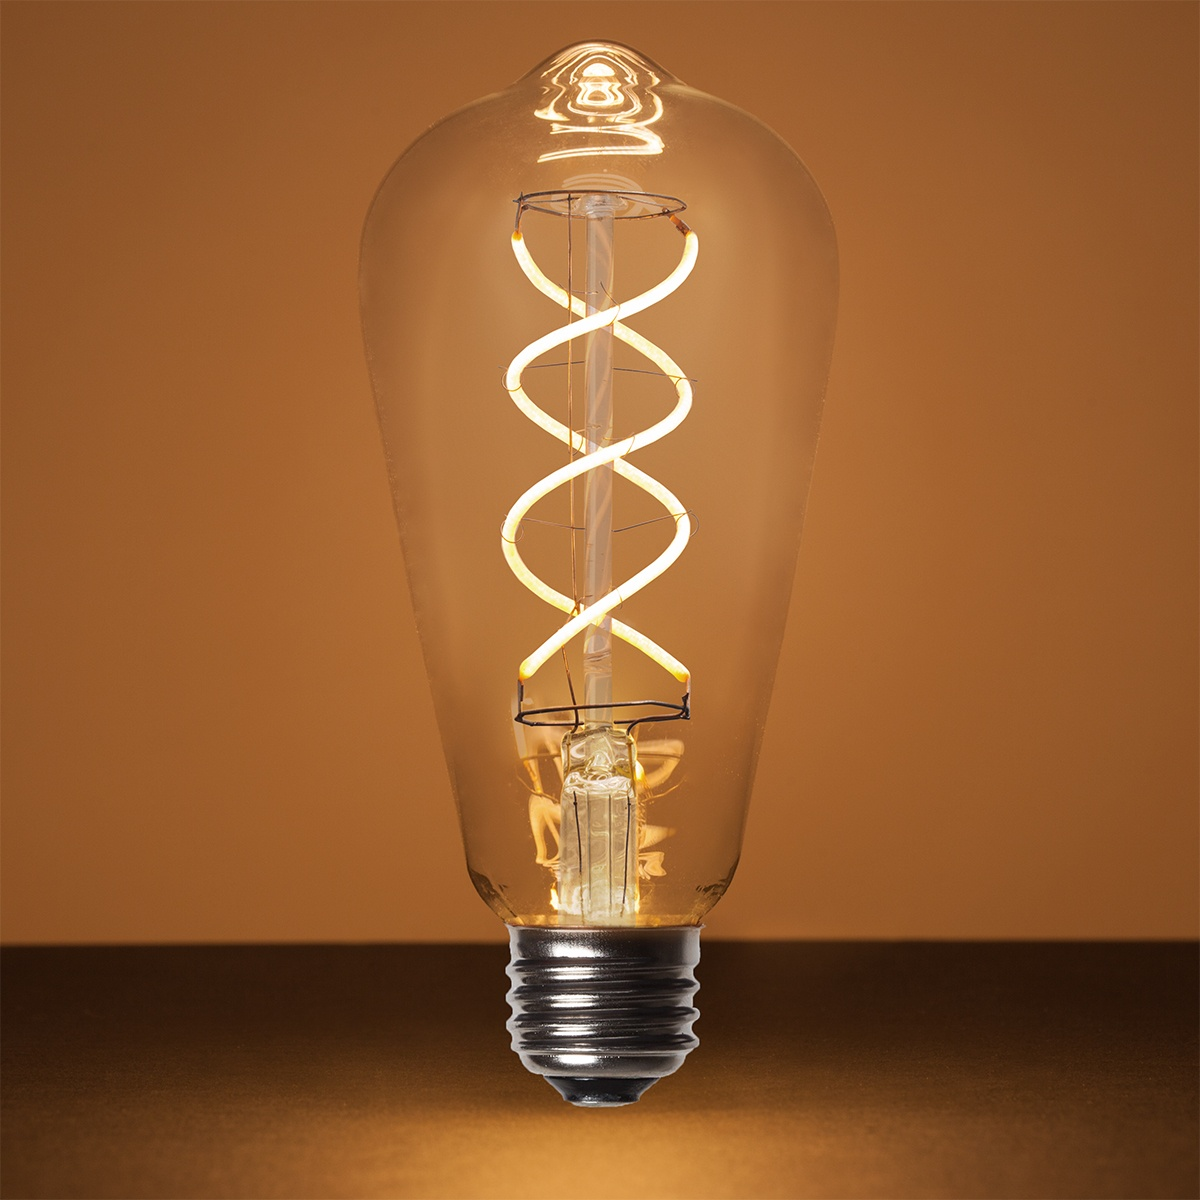 ST64 5W Warm White Glass FlexFilament TM LED Edison Bulb